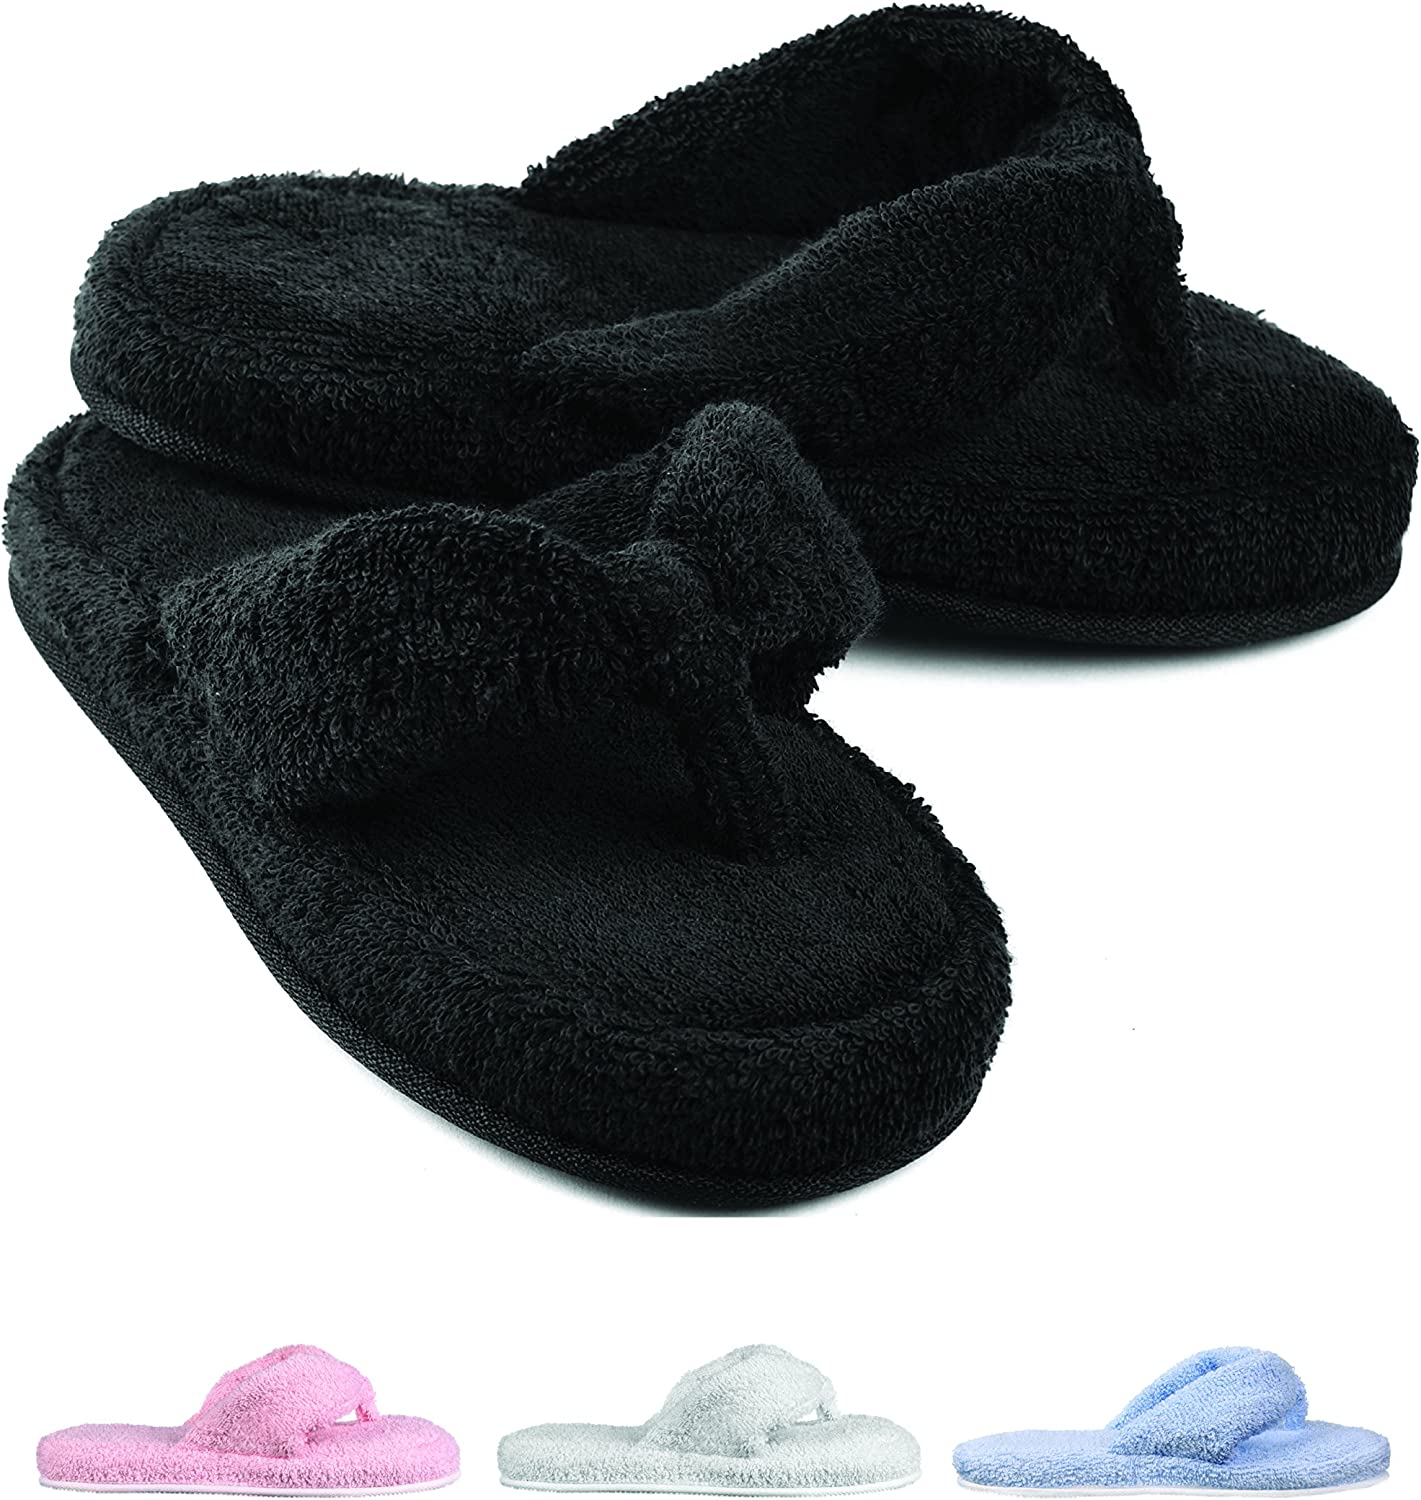 EuropeanSoftest Women's Cozy Memory Foam Soft Premium 100% Terry Cotton Cloth SPA Thong Flip Flops House Indoor Slippers